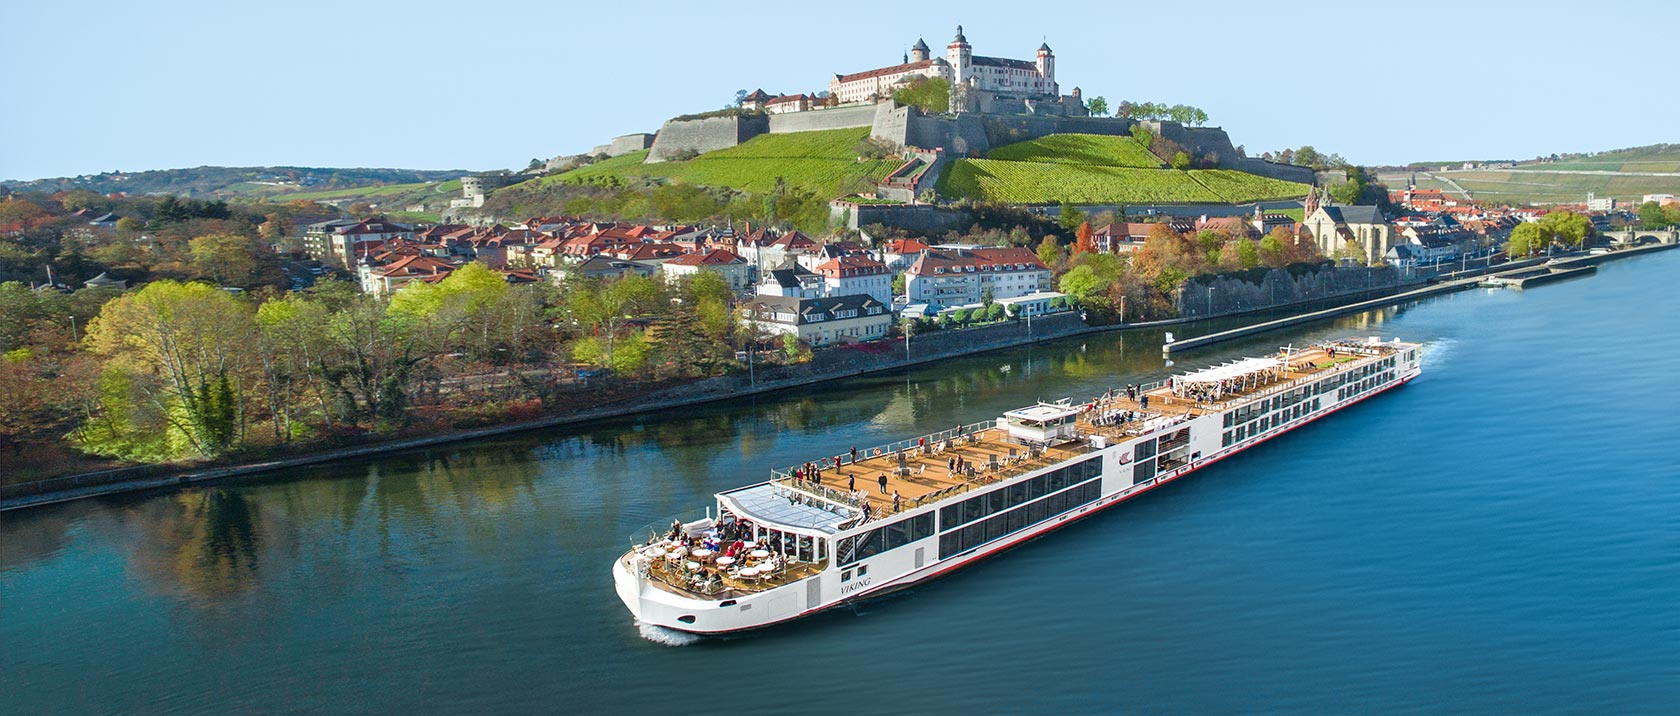 A Viking river ship sailing past Marienberg Fortress on the Main river